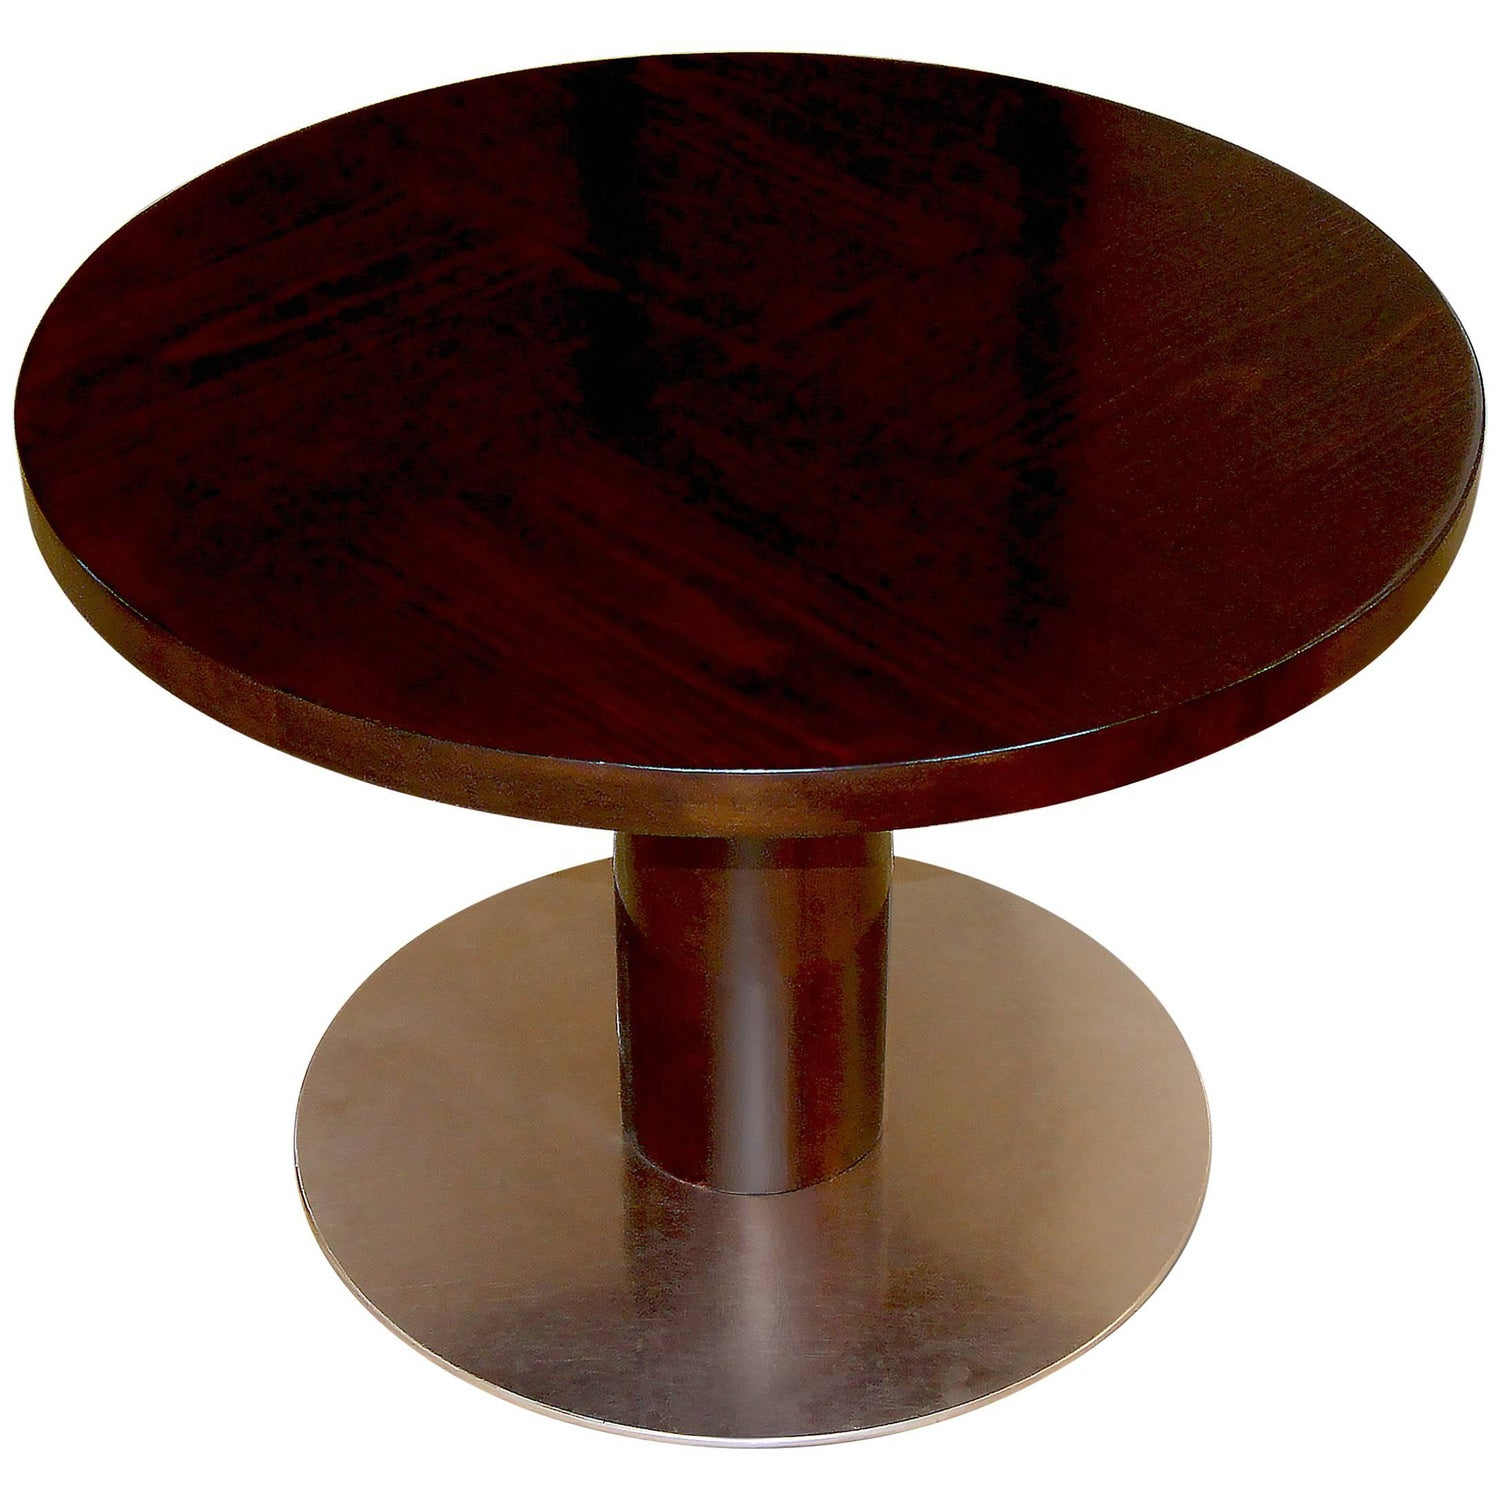 1930s Coffee and Cocktail Tables 322 For Sale at 1stdibs